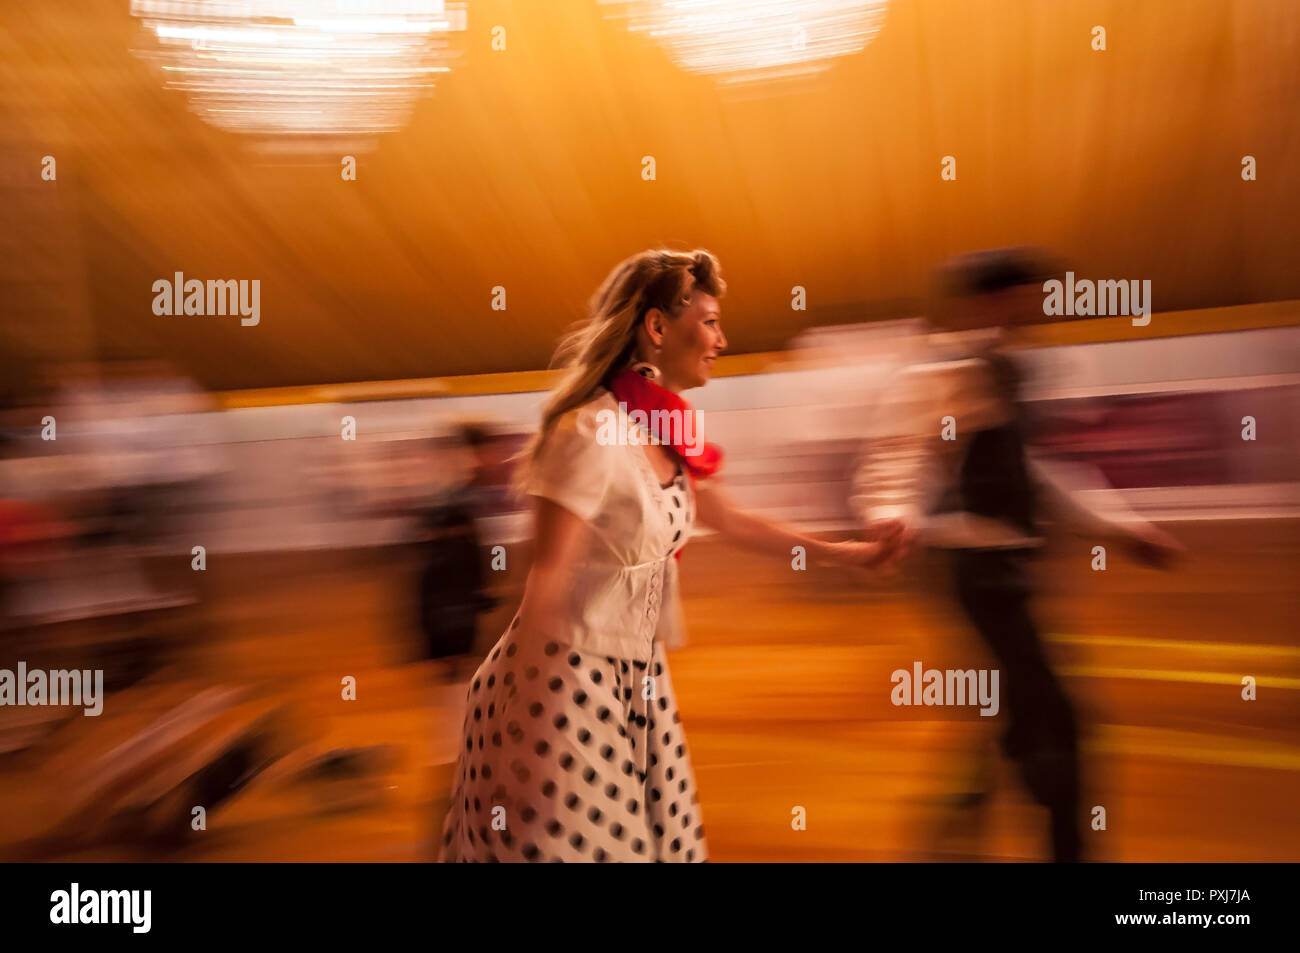 female-roller-skater-in-vintage-period-dress-at-the-goodwood-revival-1950s-era-costume-moving-fast-with-motion-blur-highlighting-face-PXJ7JA.jpg